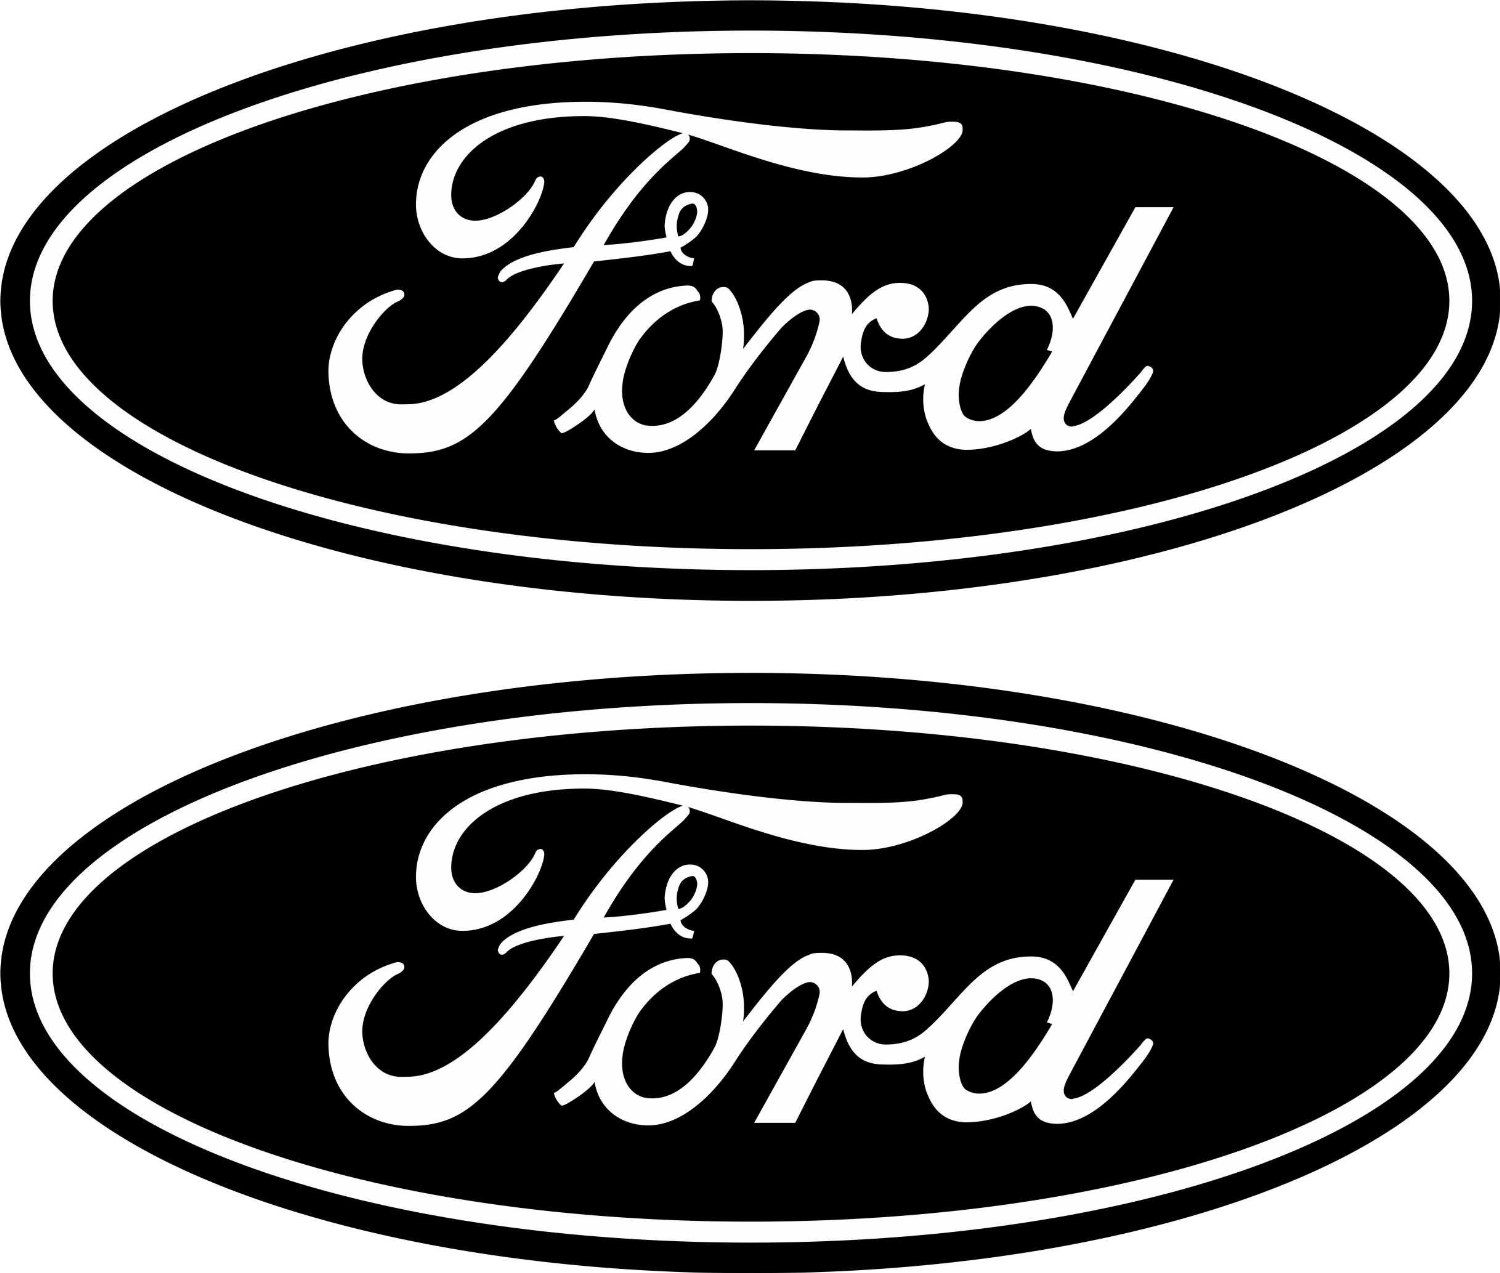 Black Ford Logo Hd Images 2216 Full Hd Wallpaper Desktop Res